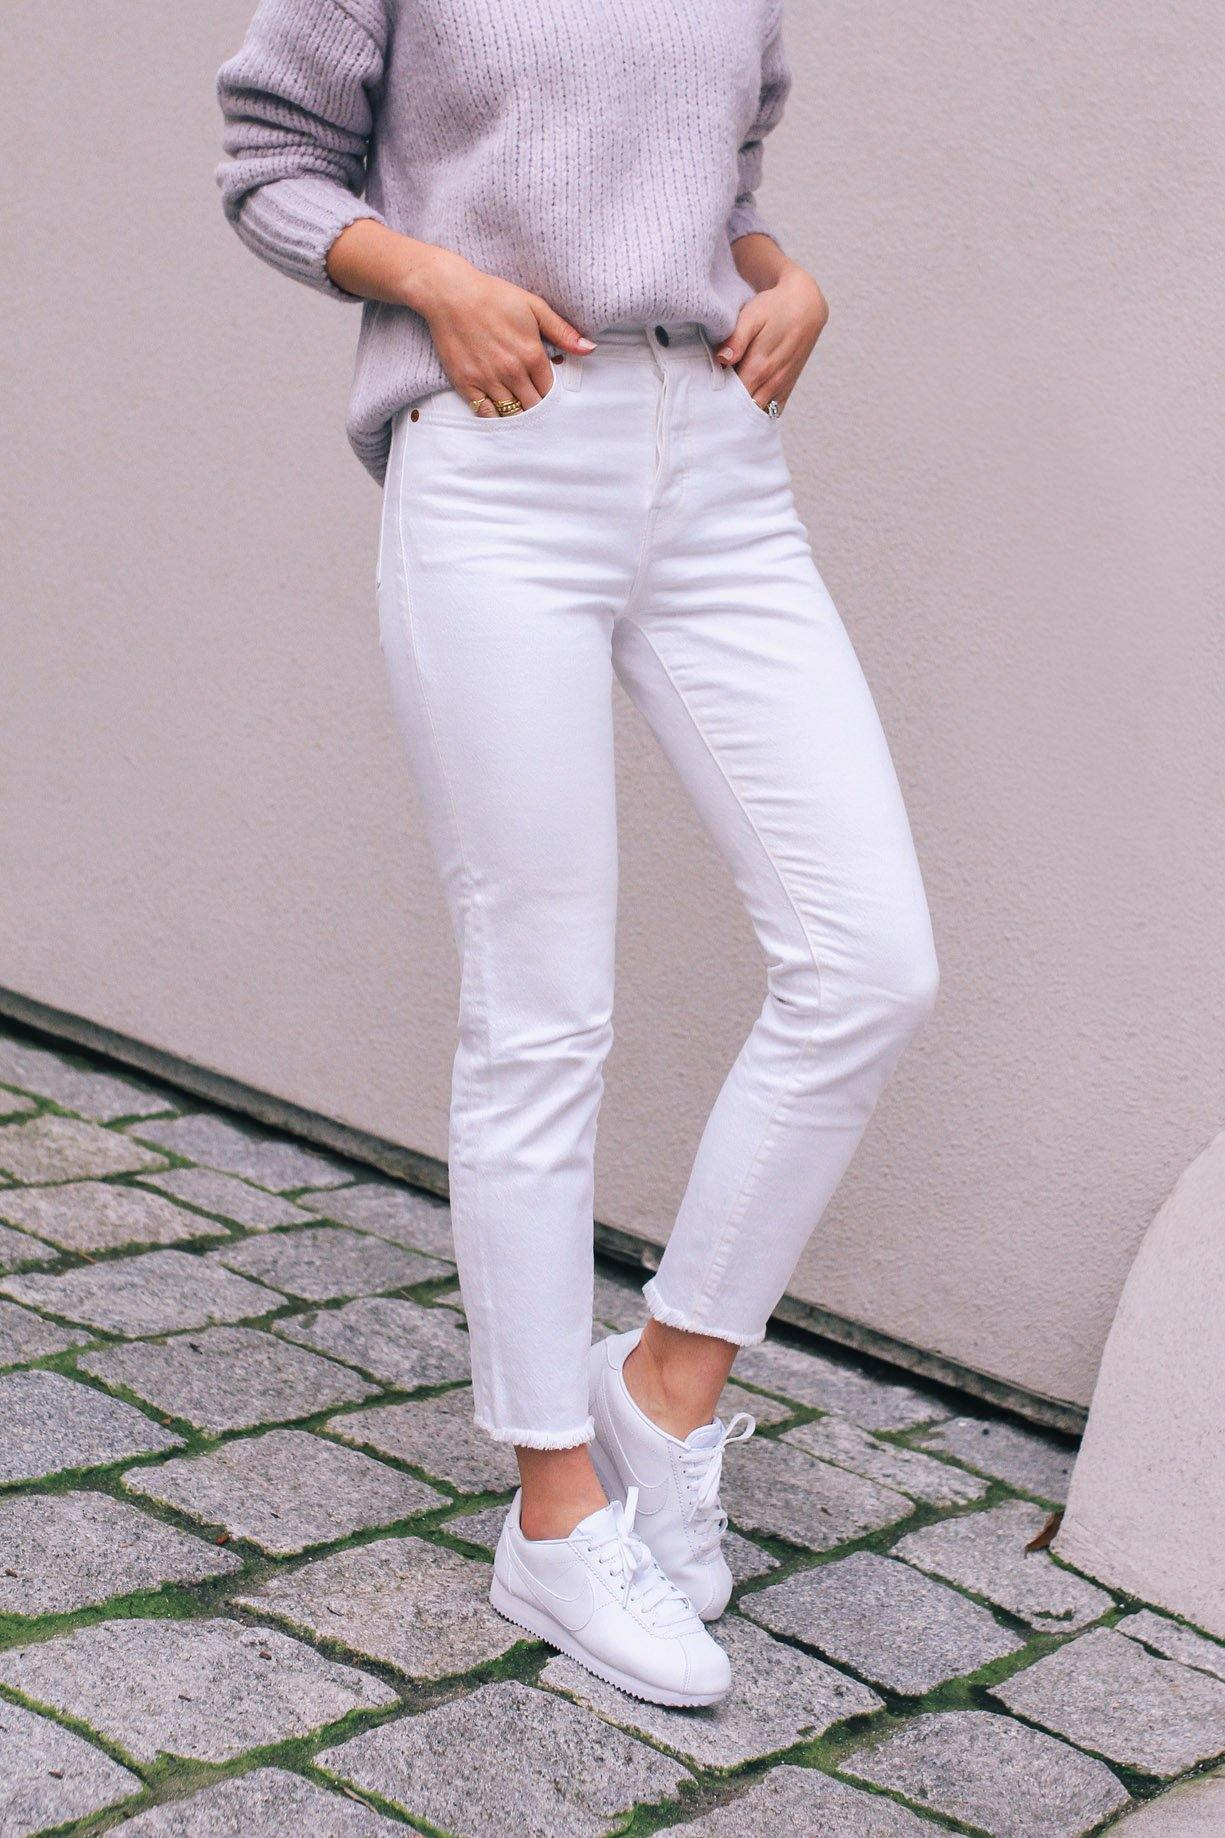 Levi's White Wedgie Jeans